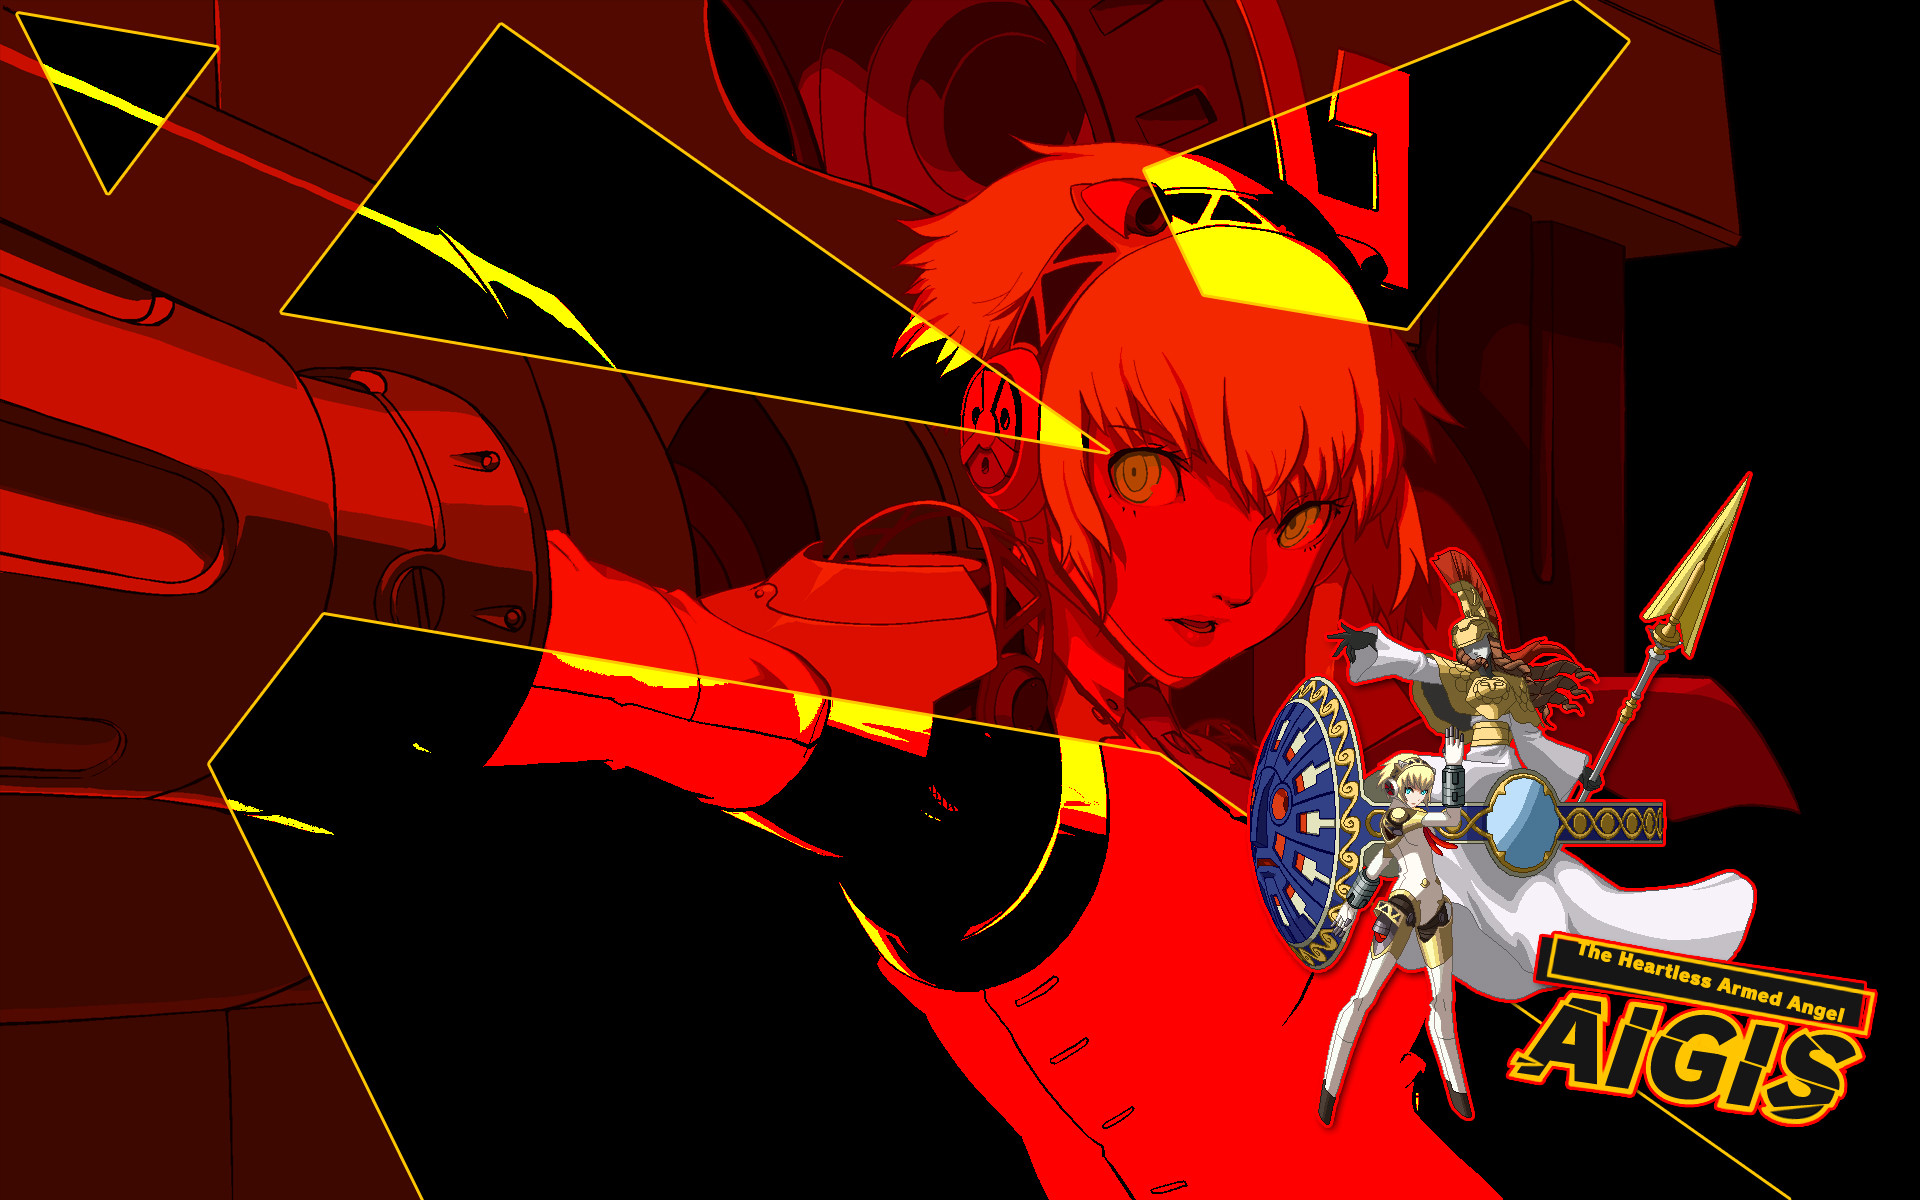 … Aigis – Persona 4 Arena HD Wallpaper for PC / PS3 by seraharcana